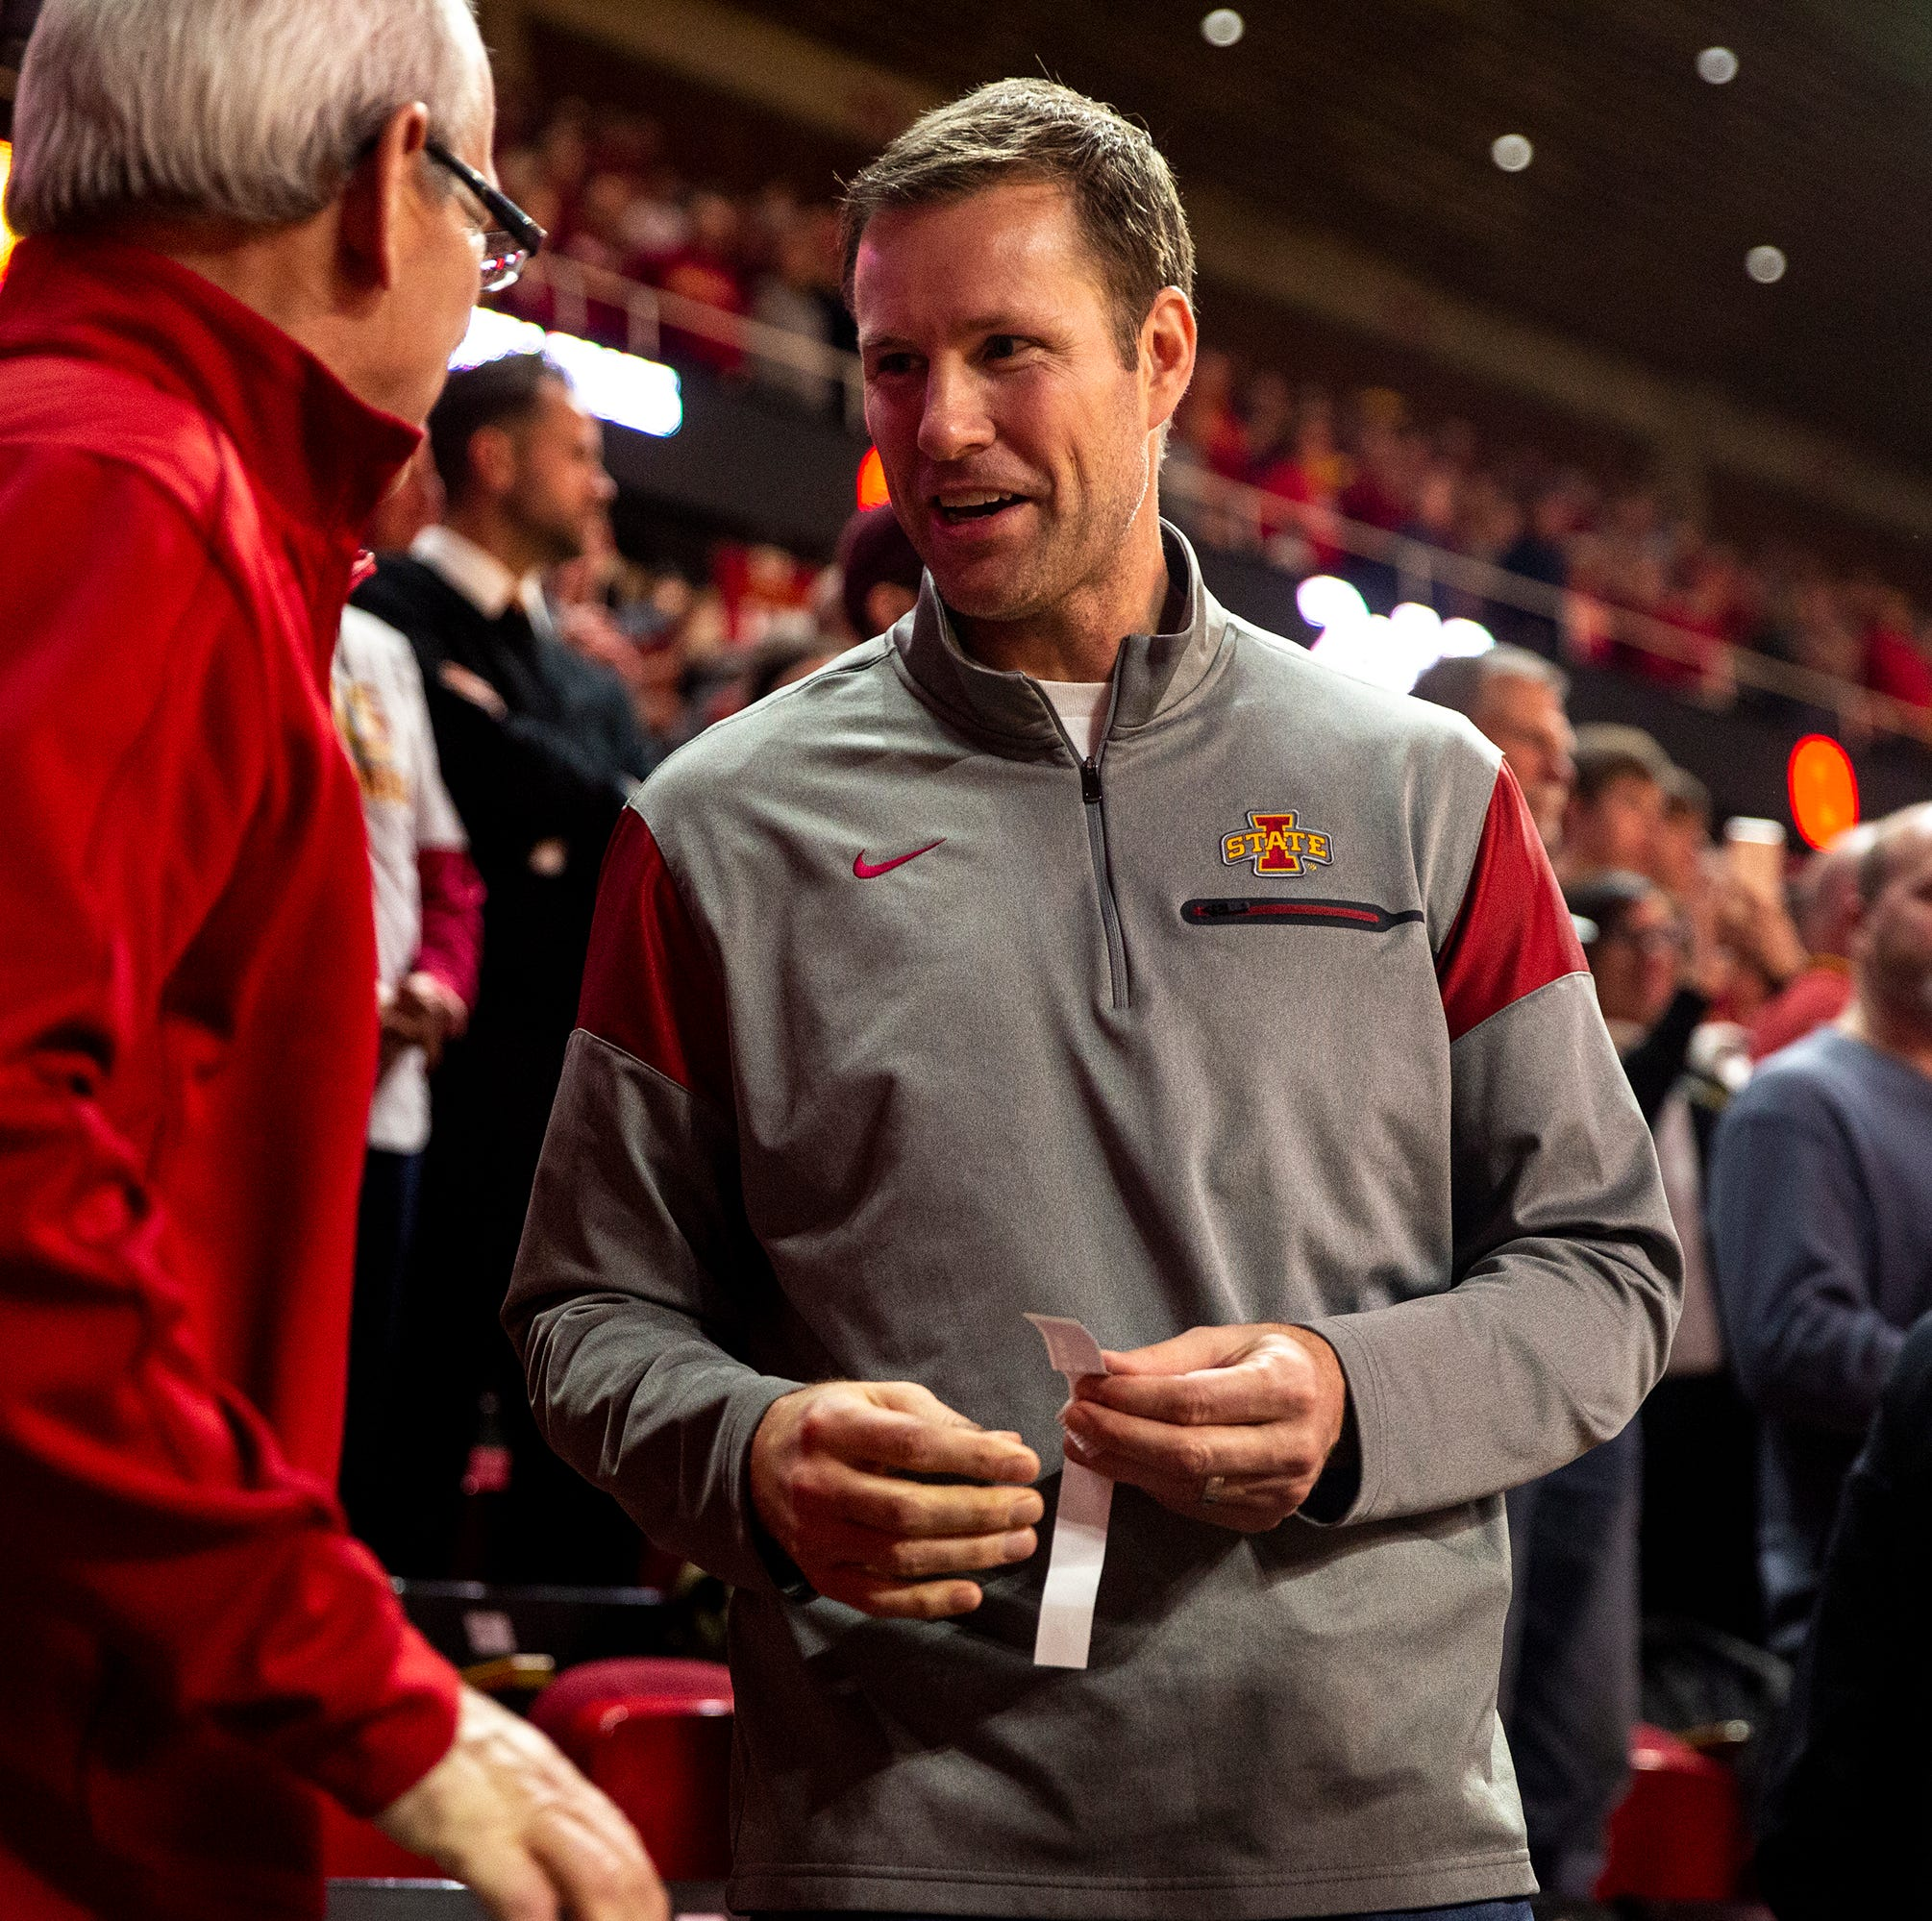 Peterson: Back in Ames for a game, Fred Hoiberg says he misses the 'grind' of coaching